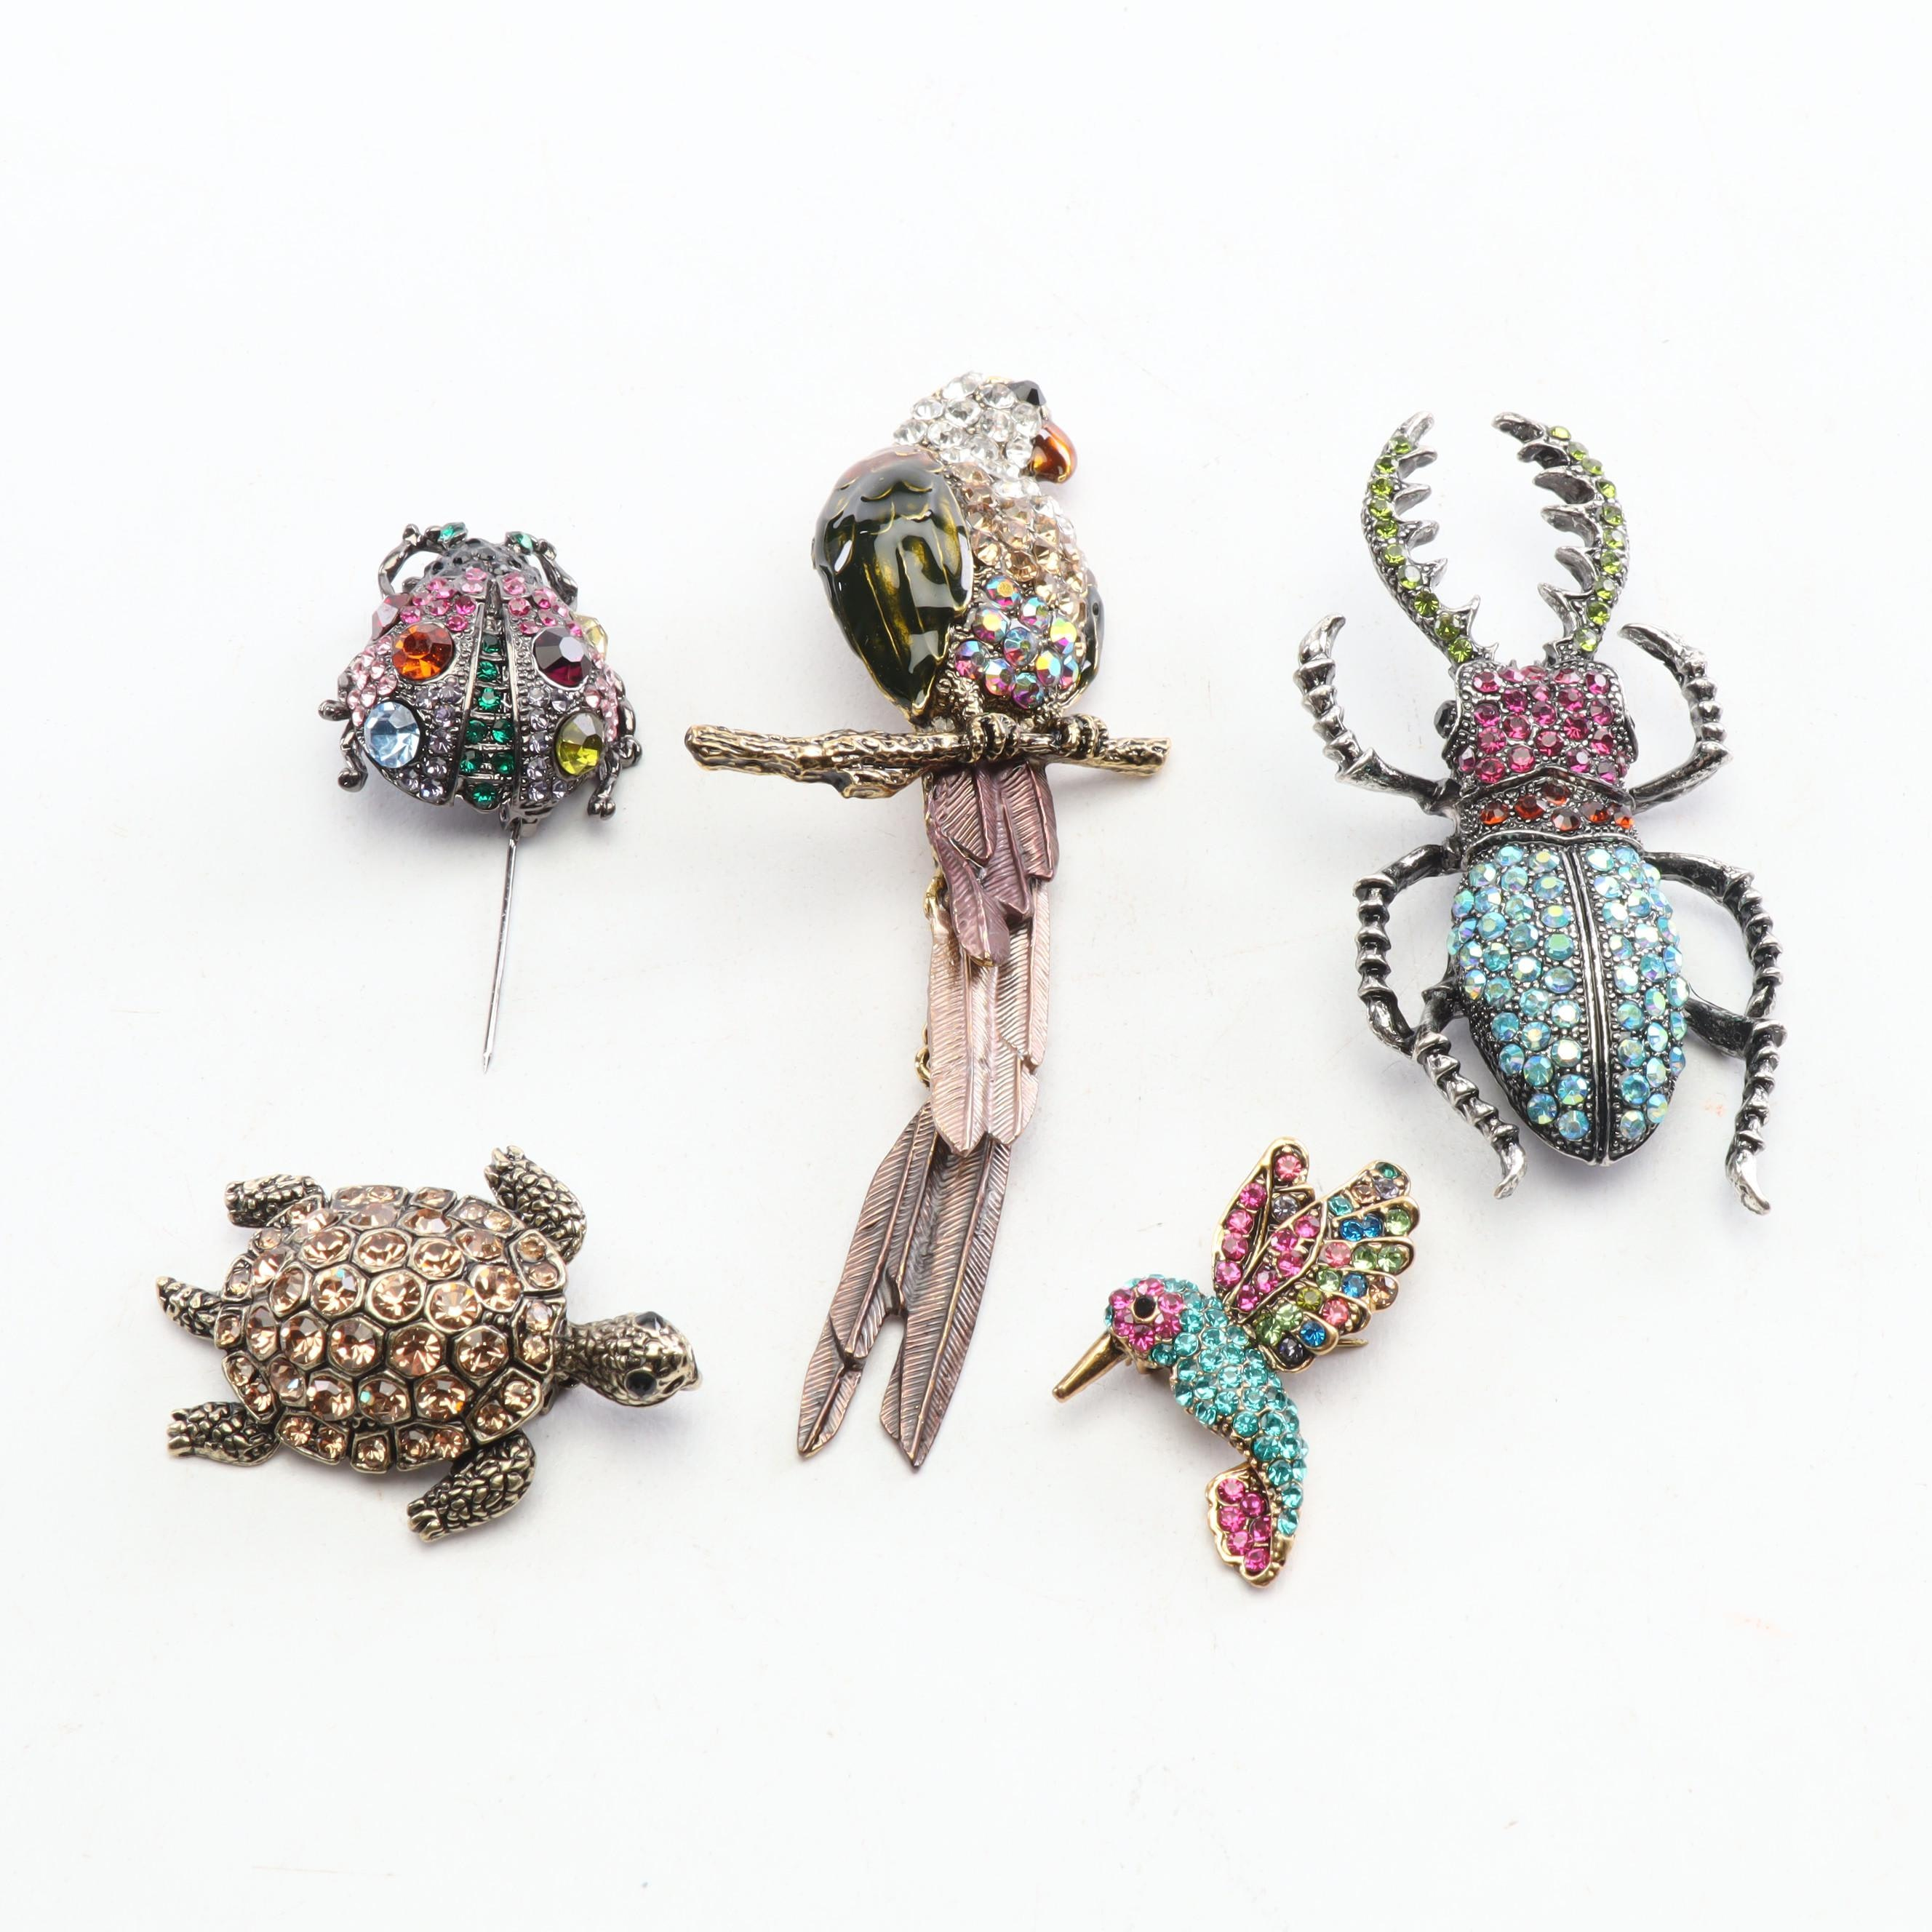 Animal and Insect Shaped Rhinestone Brooches